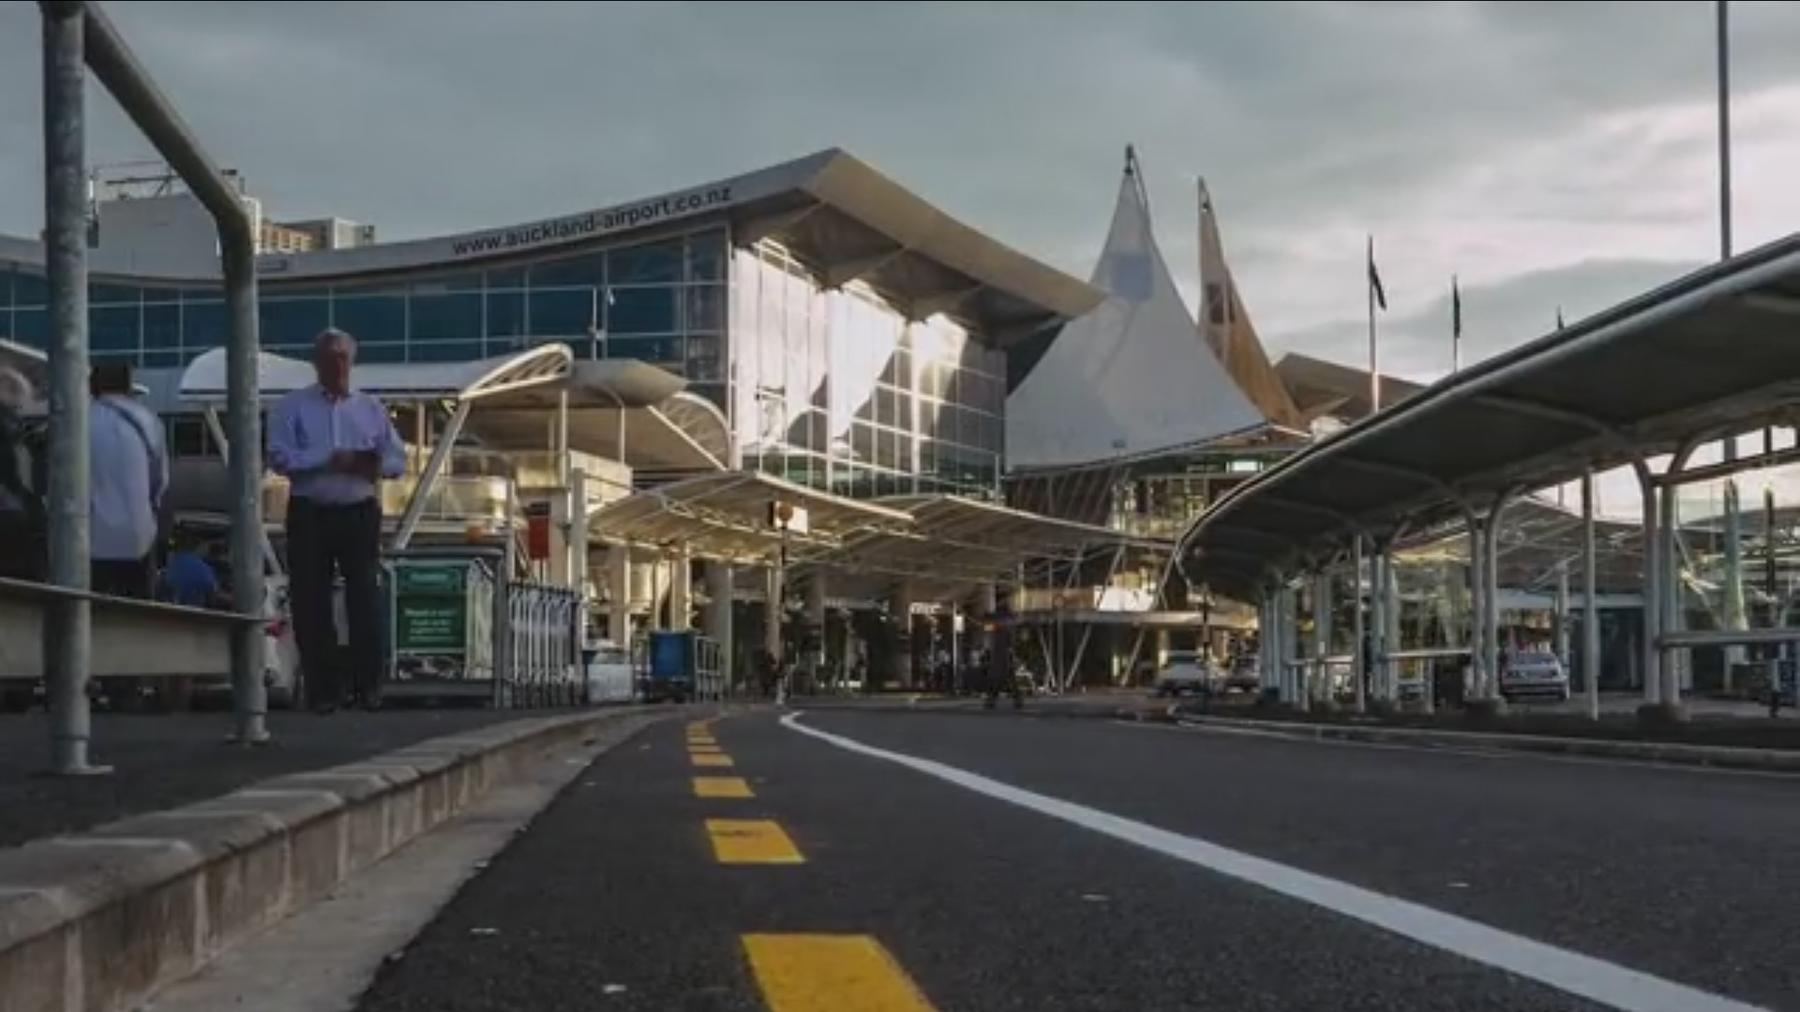 Auckland International Airport | Leasing